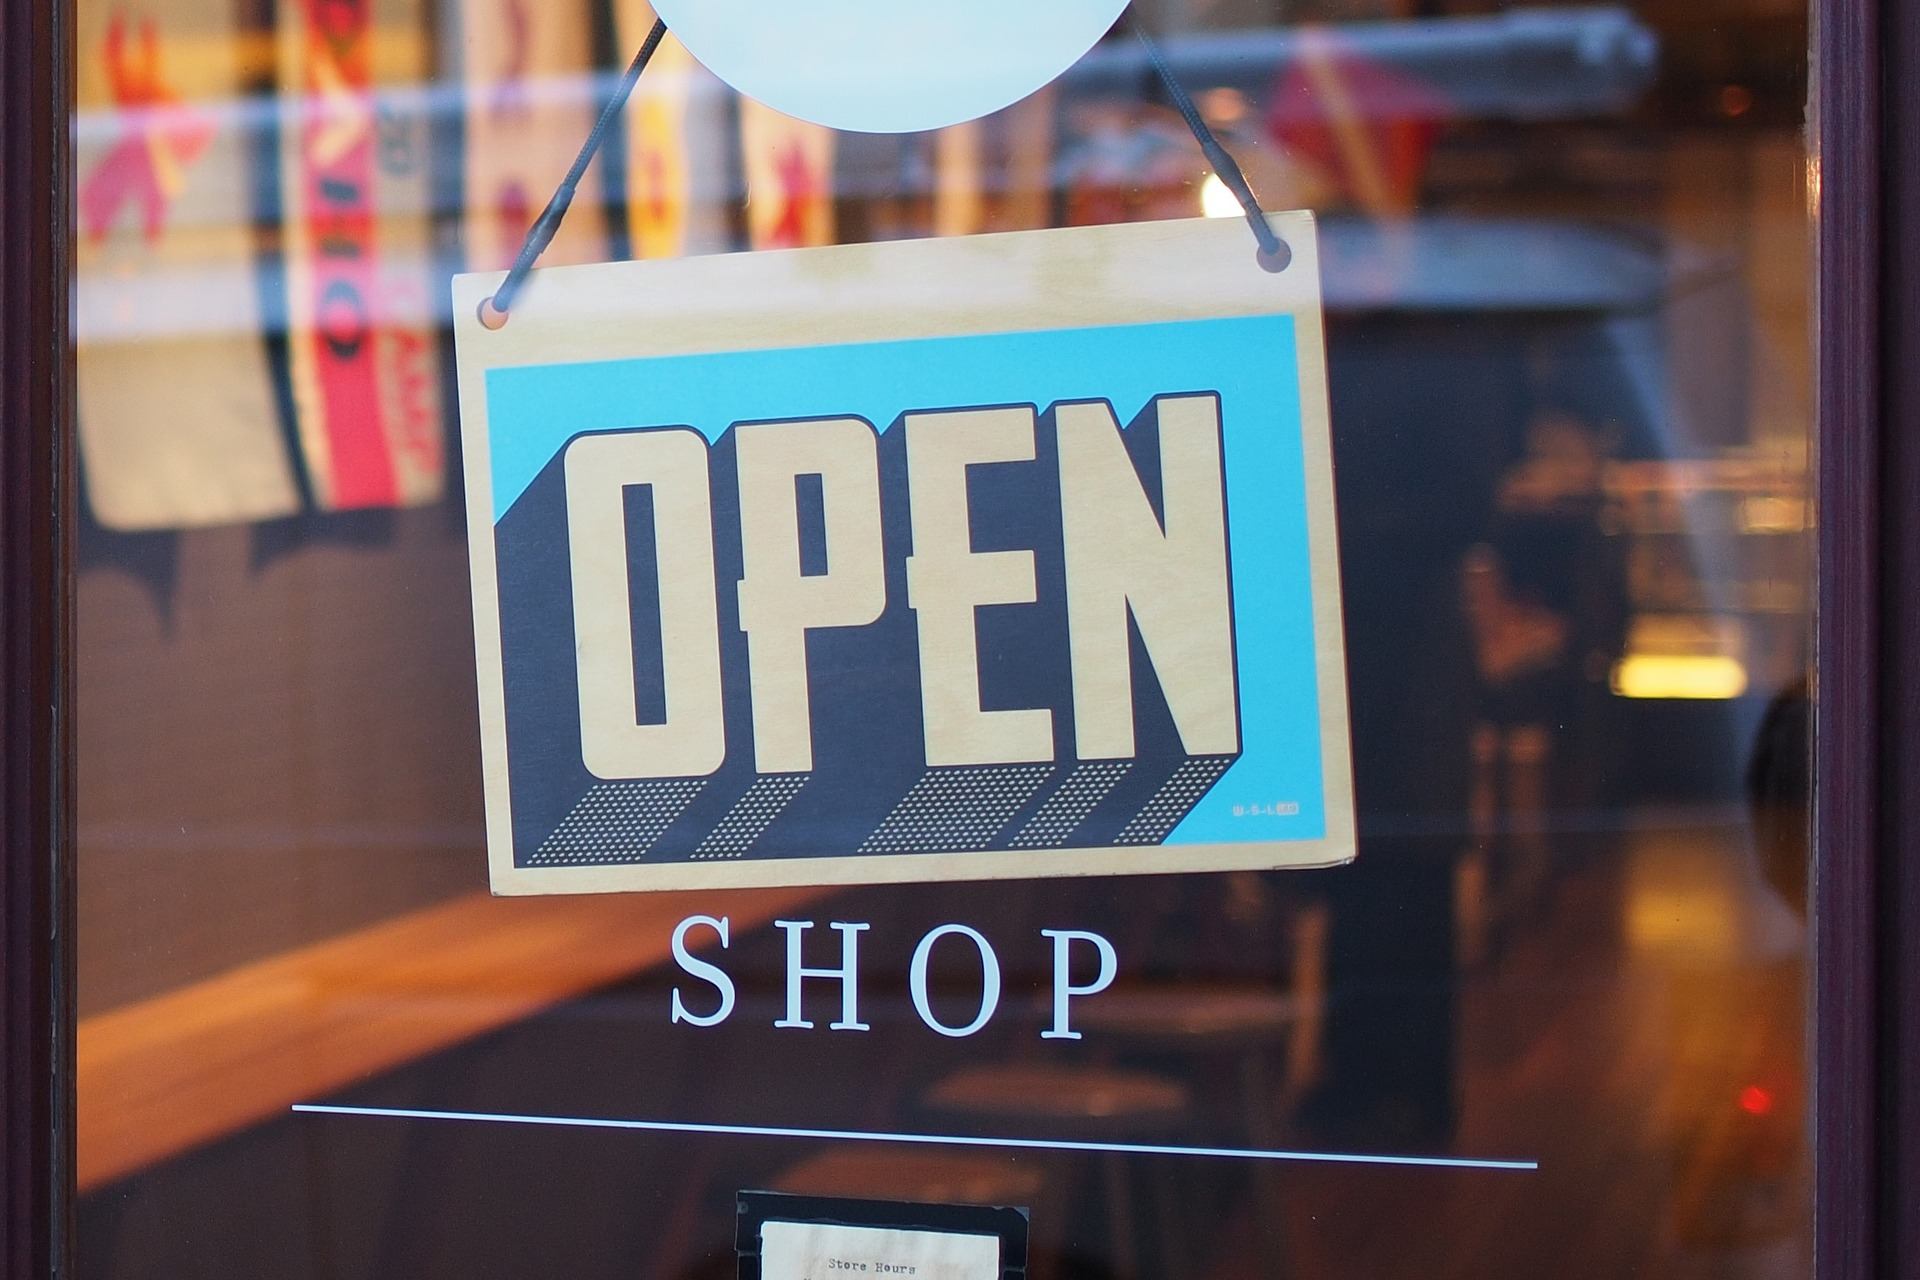 retail store operations checklist